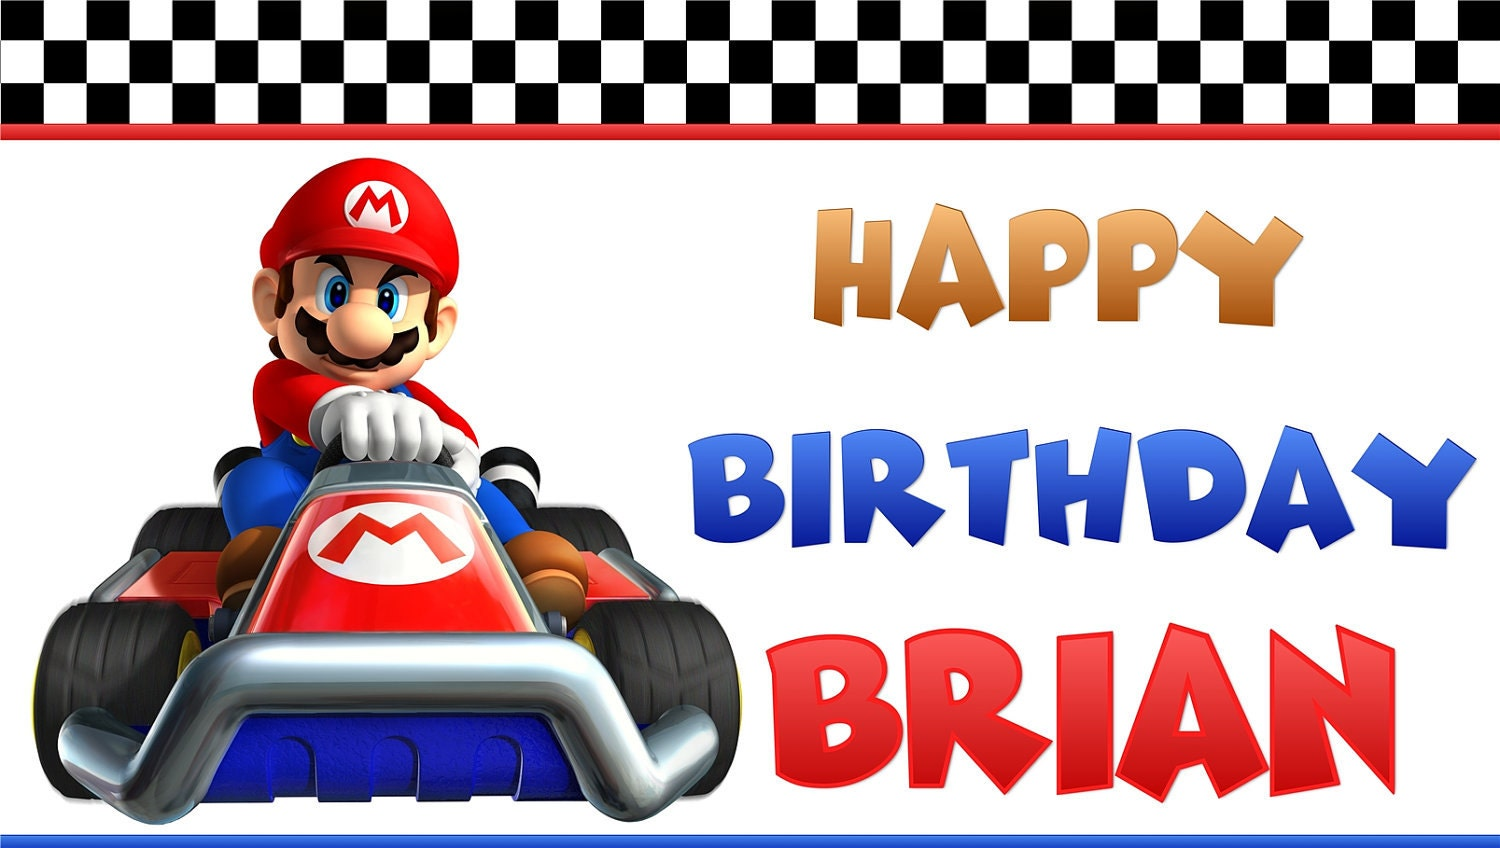 Super Mario Brothers Kart Personalized Custom Birthday Banner | Etsy